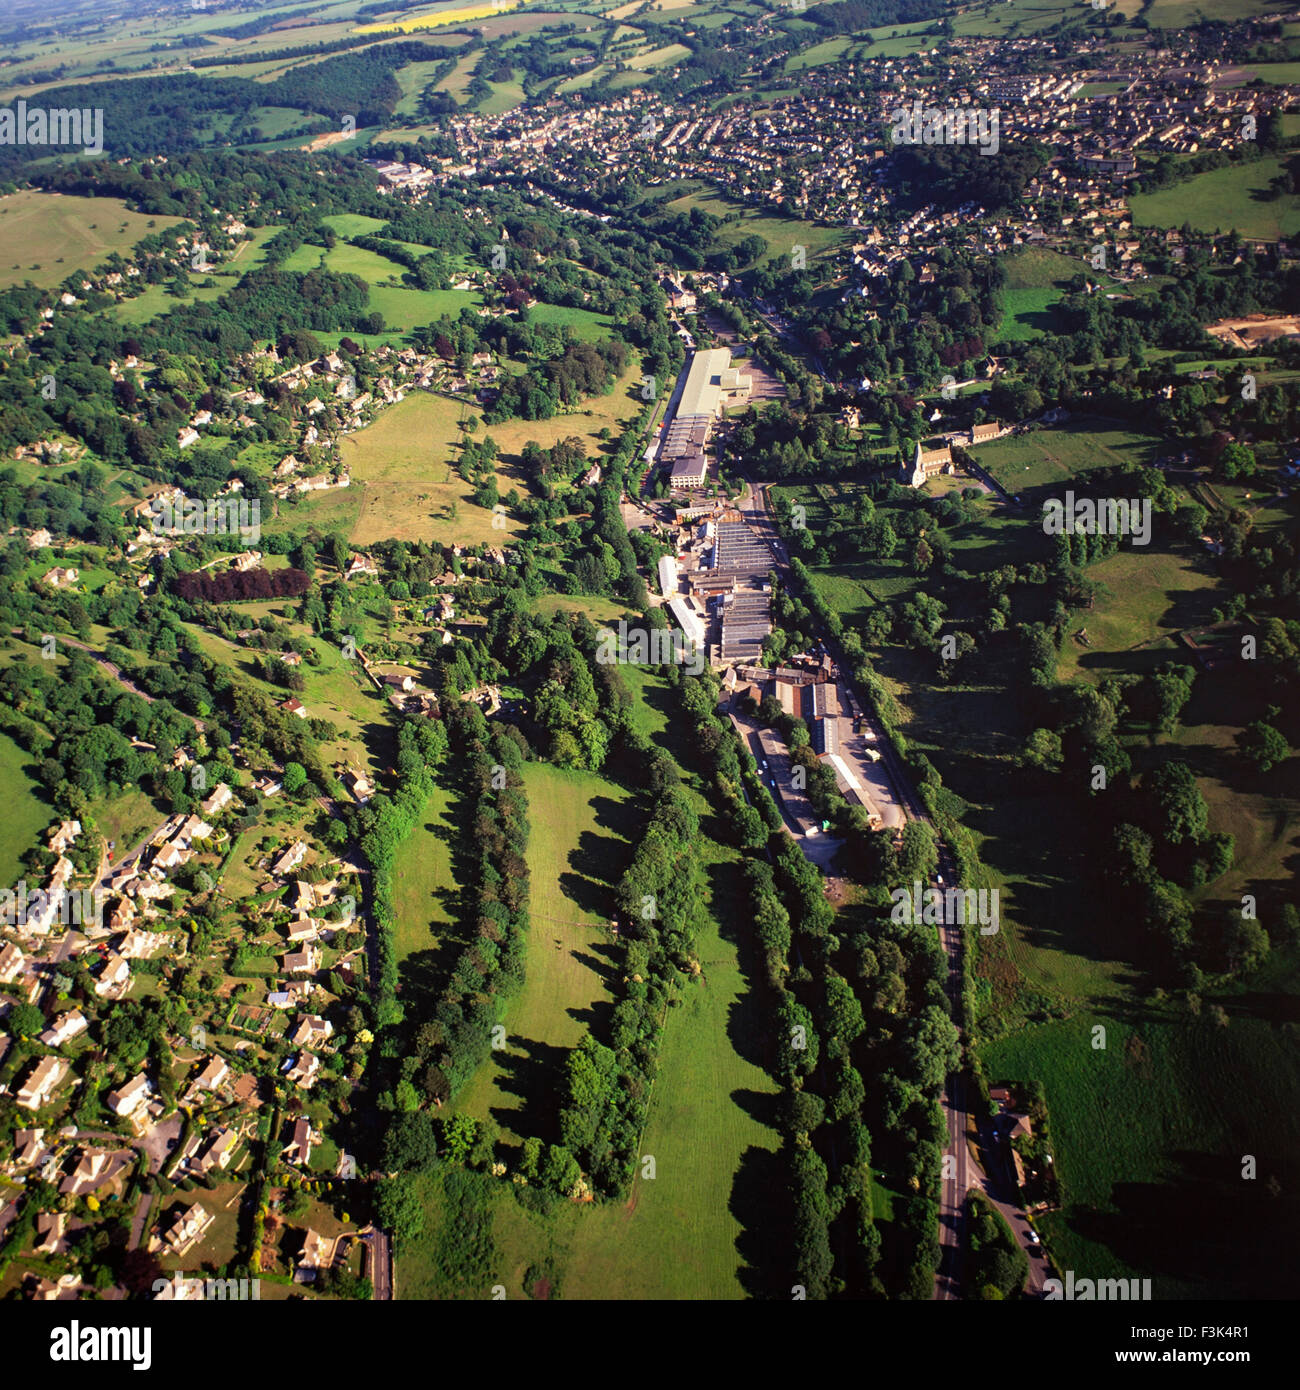 Aerial view of the Nailsworth valley, Gloucestershire - Stock Image